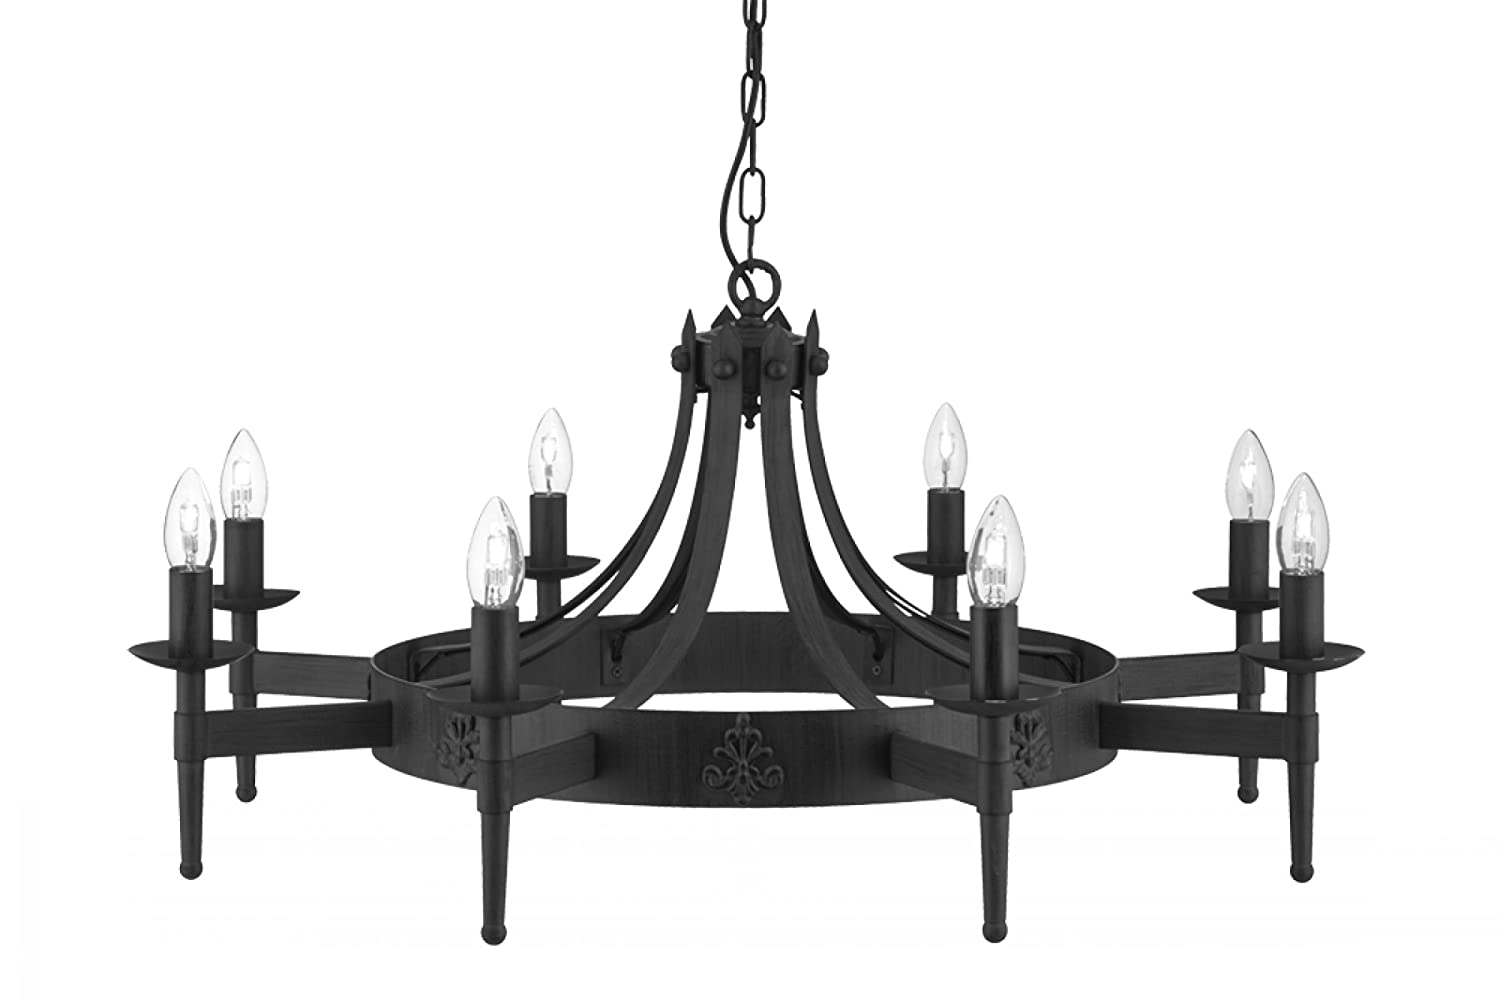 Searchlight Cartwheel Wrought Iron 8 Light Ceiling Fitting